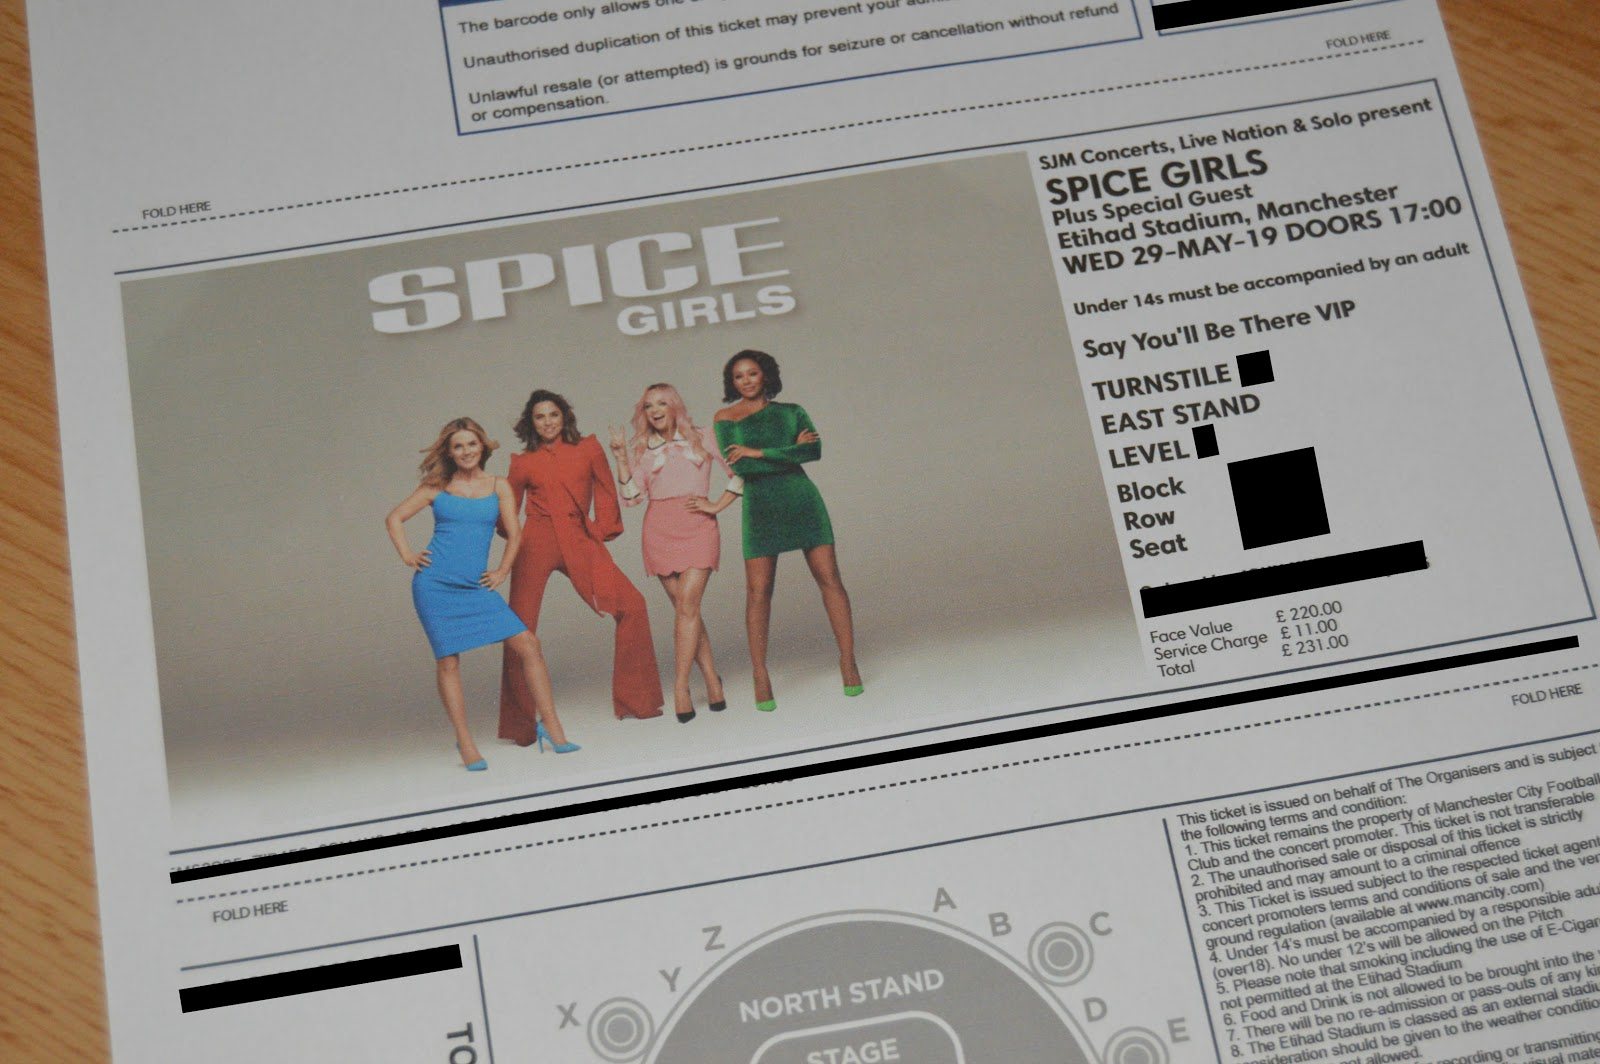 The Spice Girls Tickets